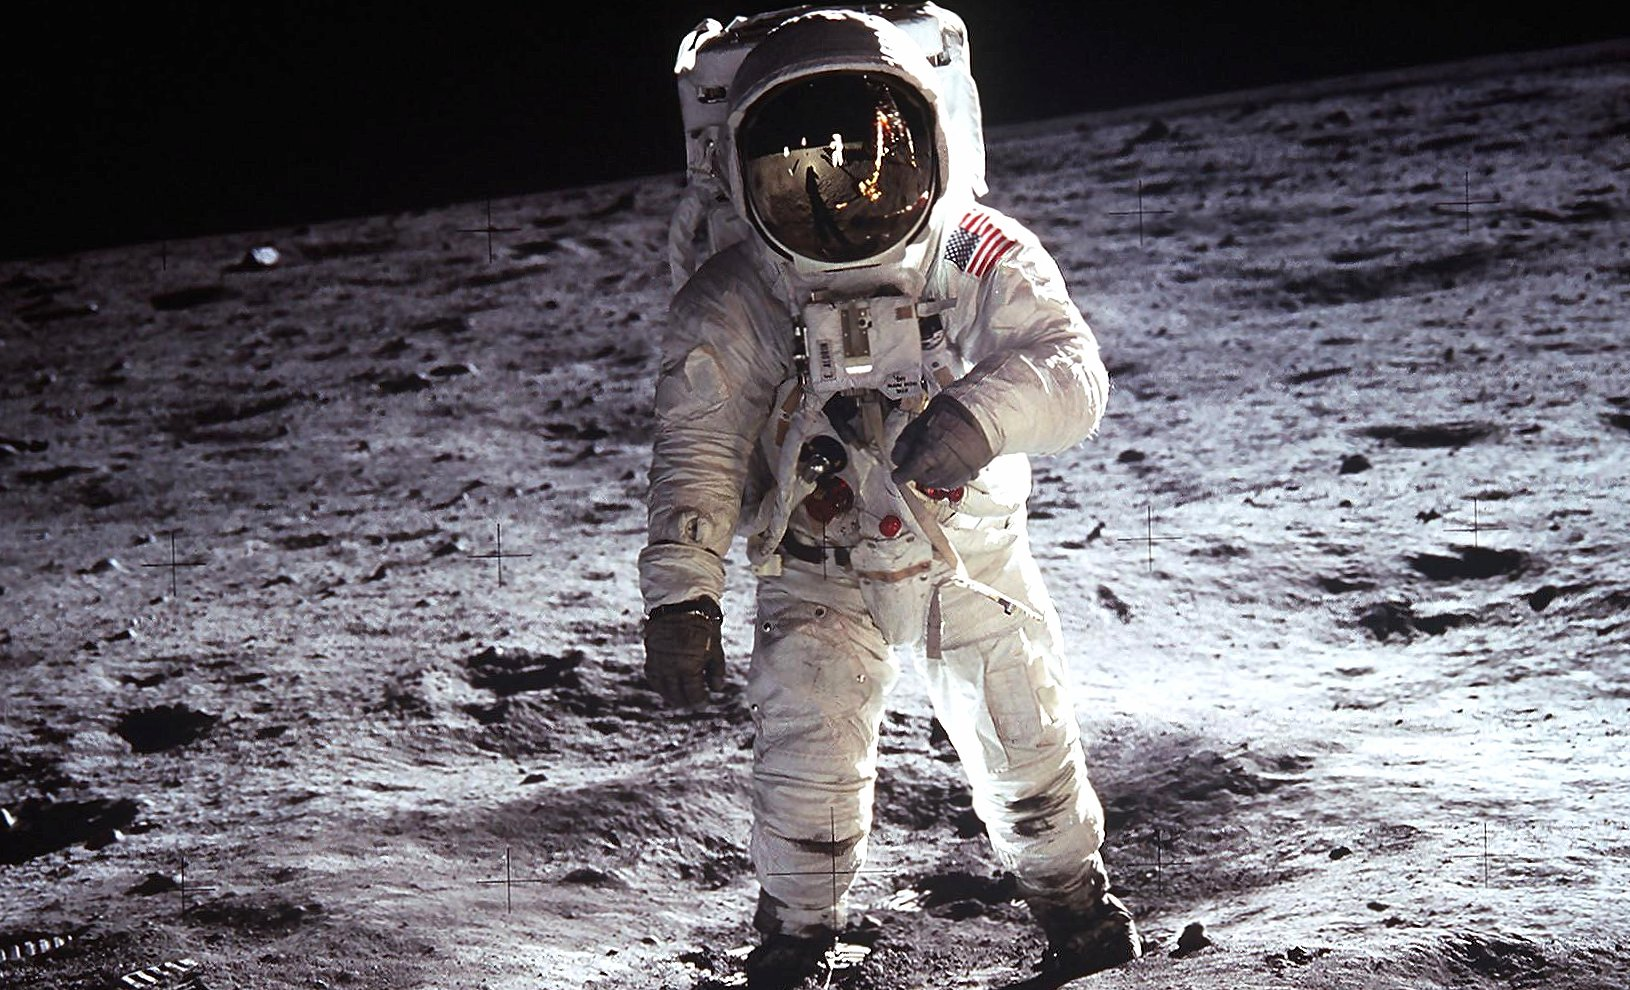 Neil armstrong in the moon wallpapers HD quality